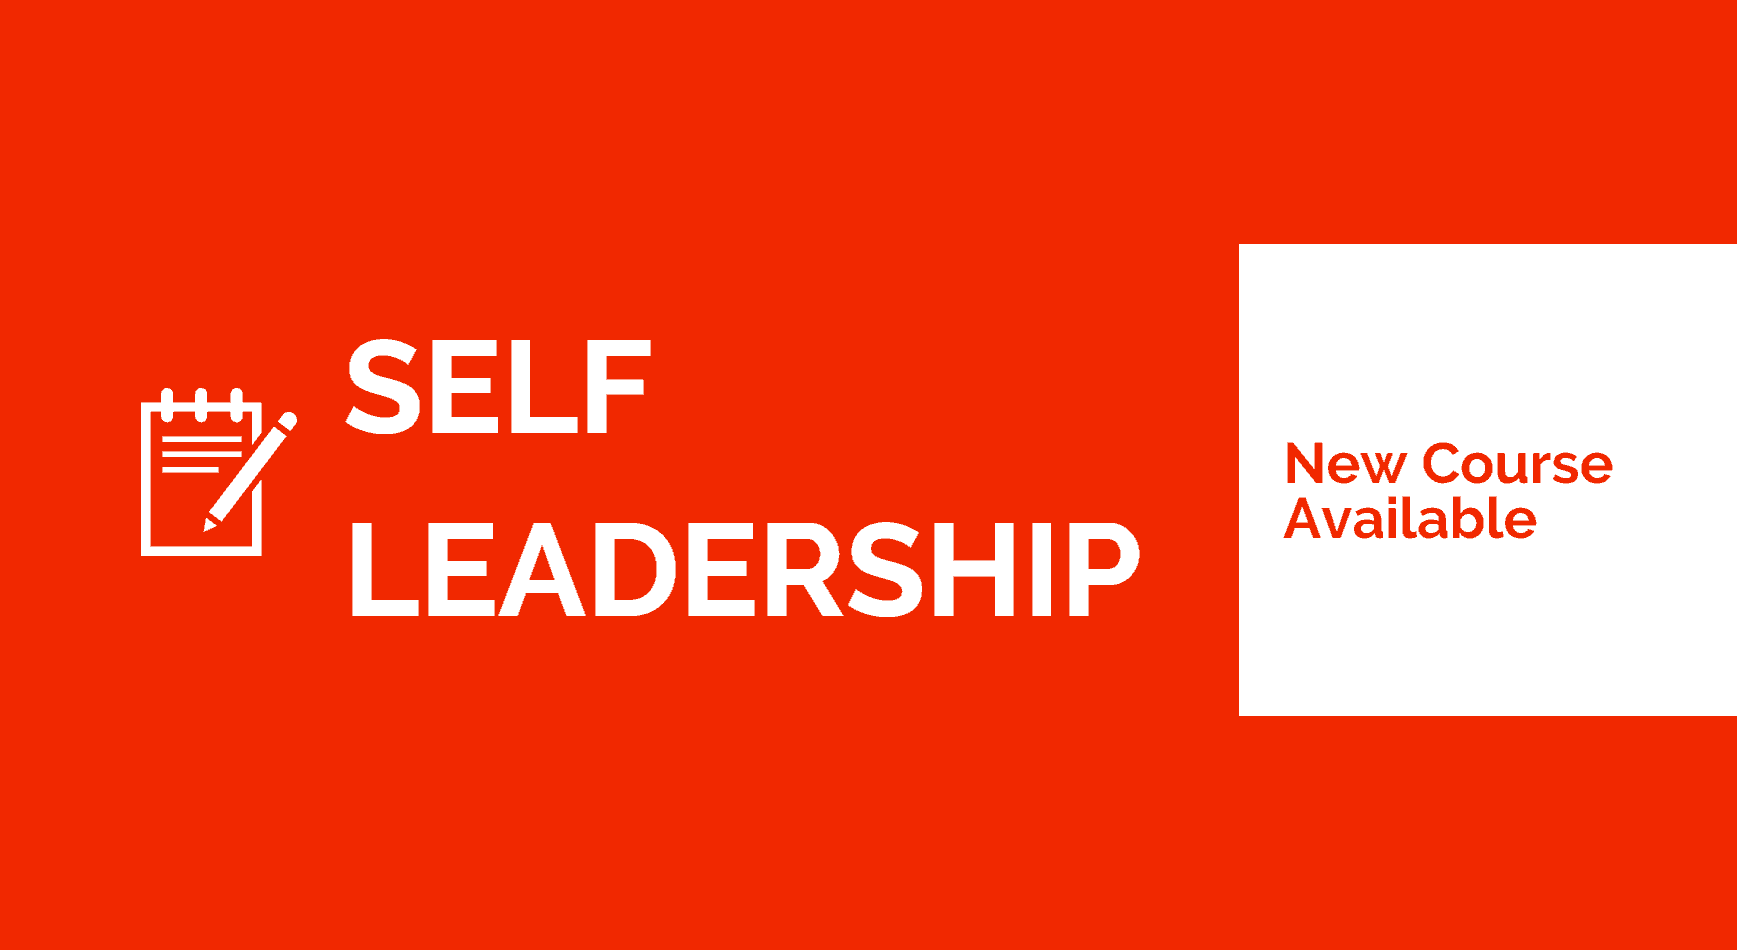 self-leadership-course-benefits